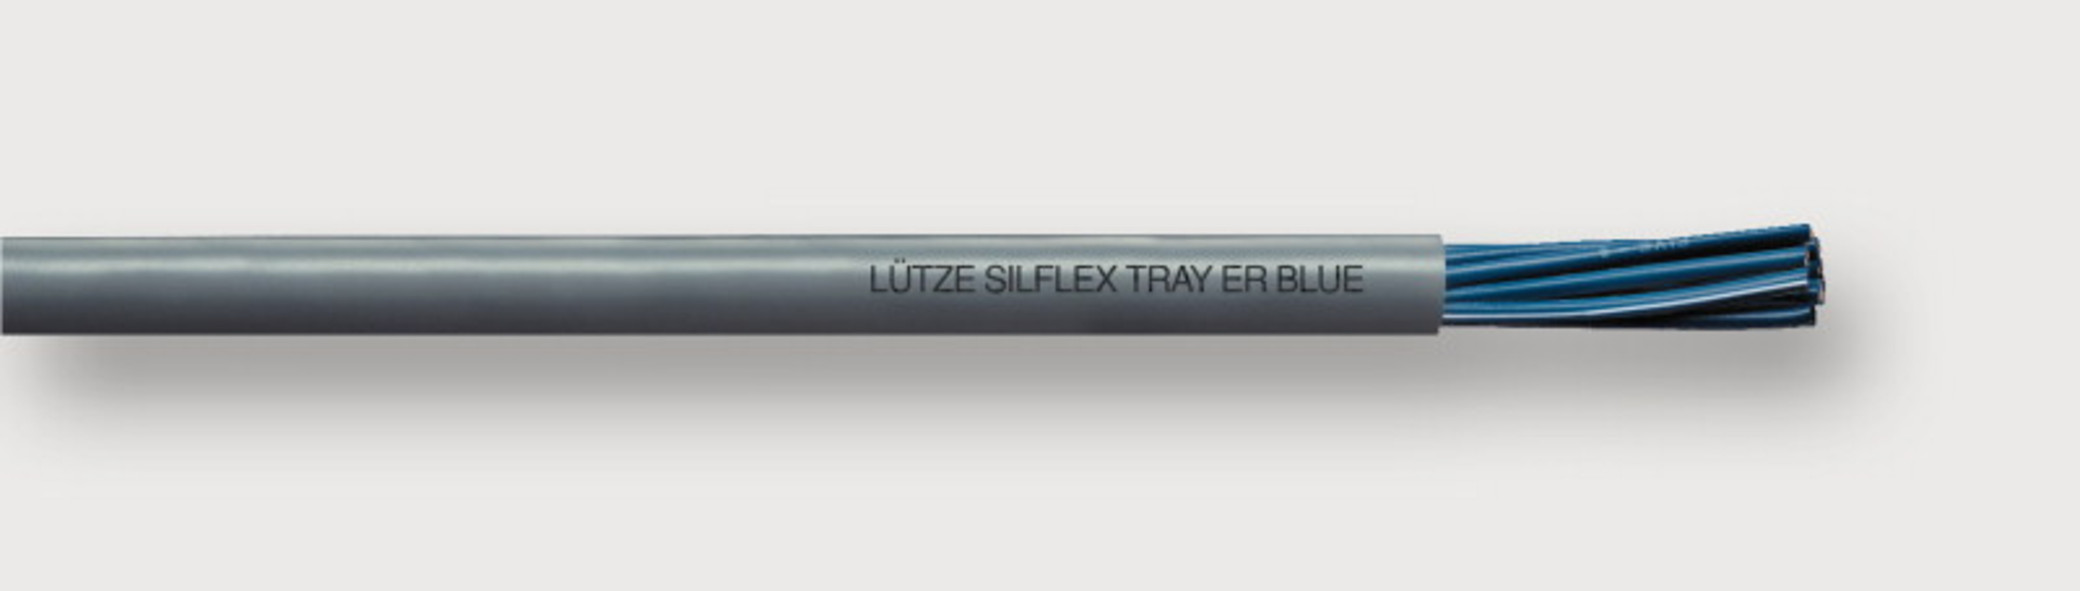 A3251625 - LÜTZE SILFLEX® Tray-ER Blue PVC with UL/TC-ER/CE Approvals, Blue Conductors for 24 V Applications